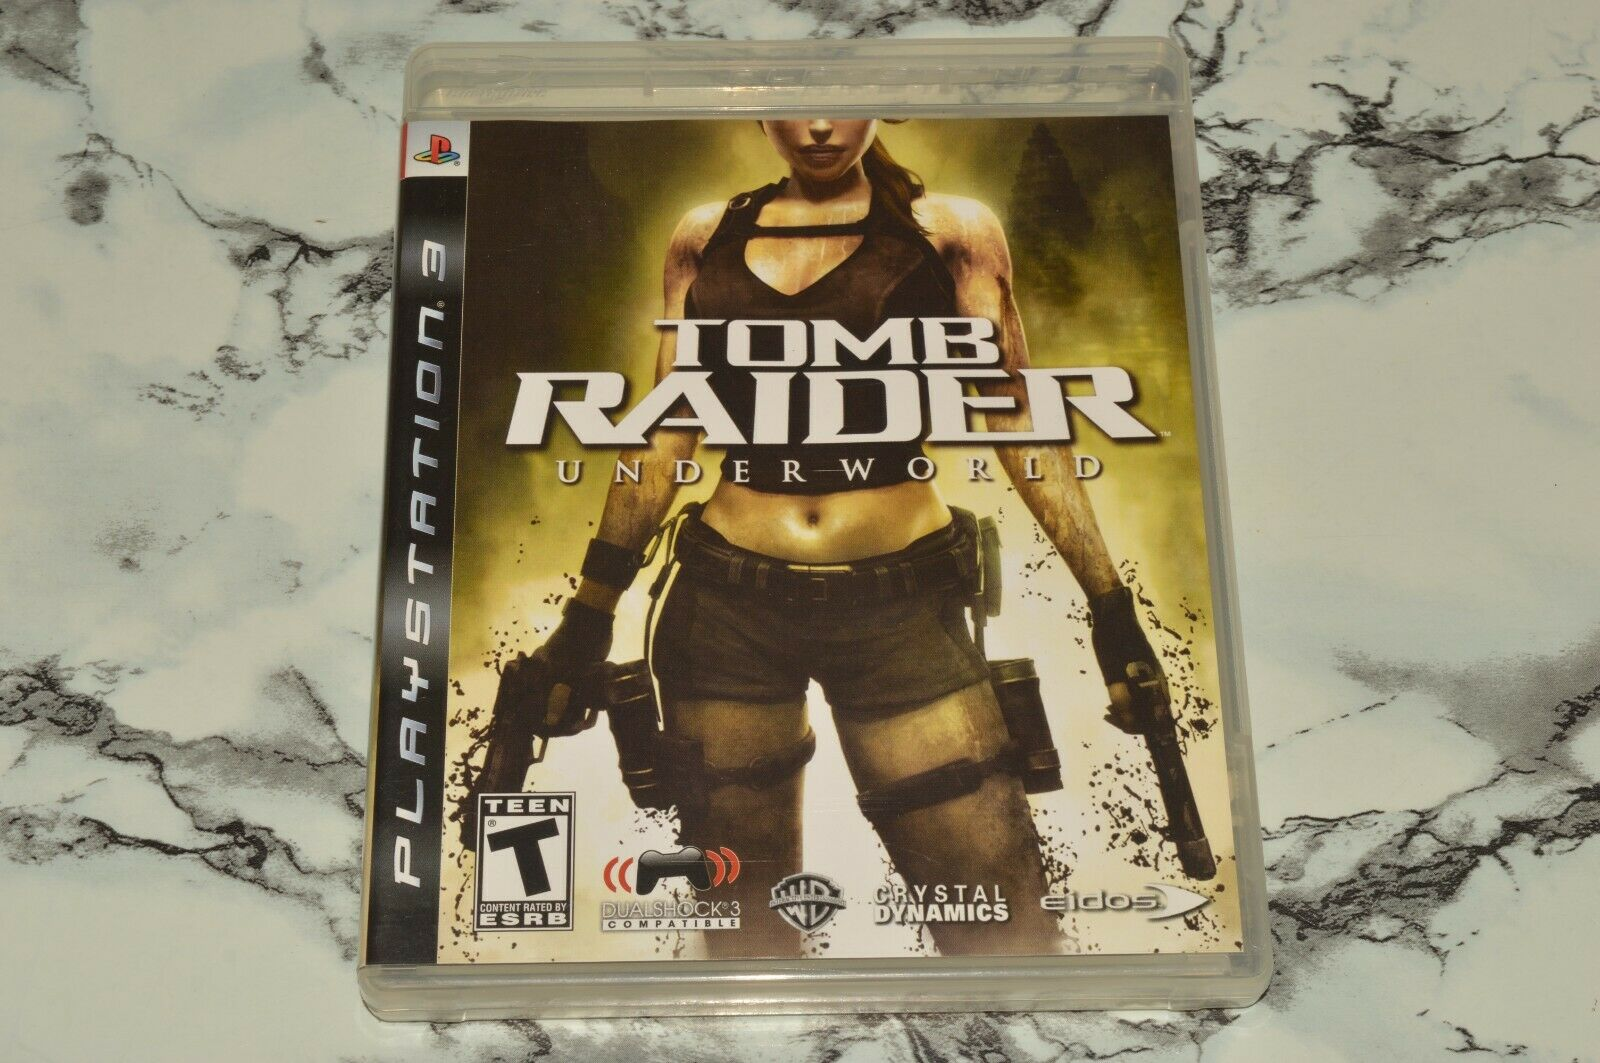 Tomb Raider - Underworld Sony PlayStation 3 PS3, 2008 -- Complete W/ Manual - $11.18